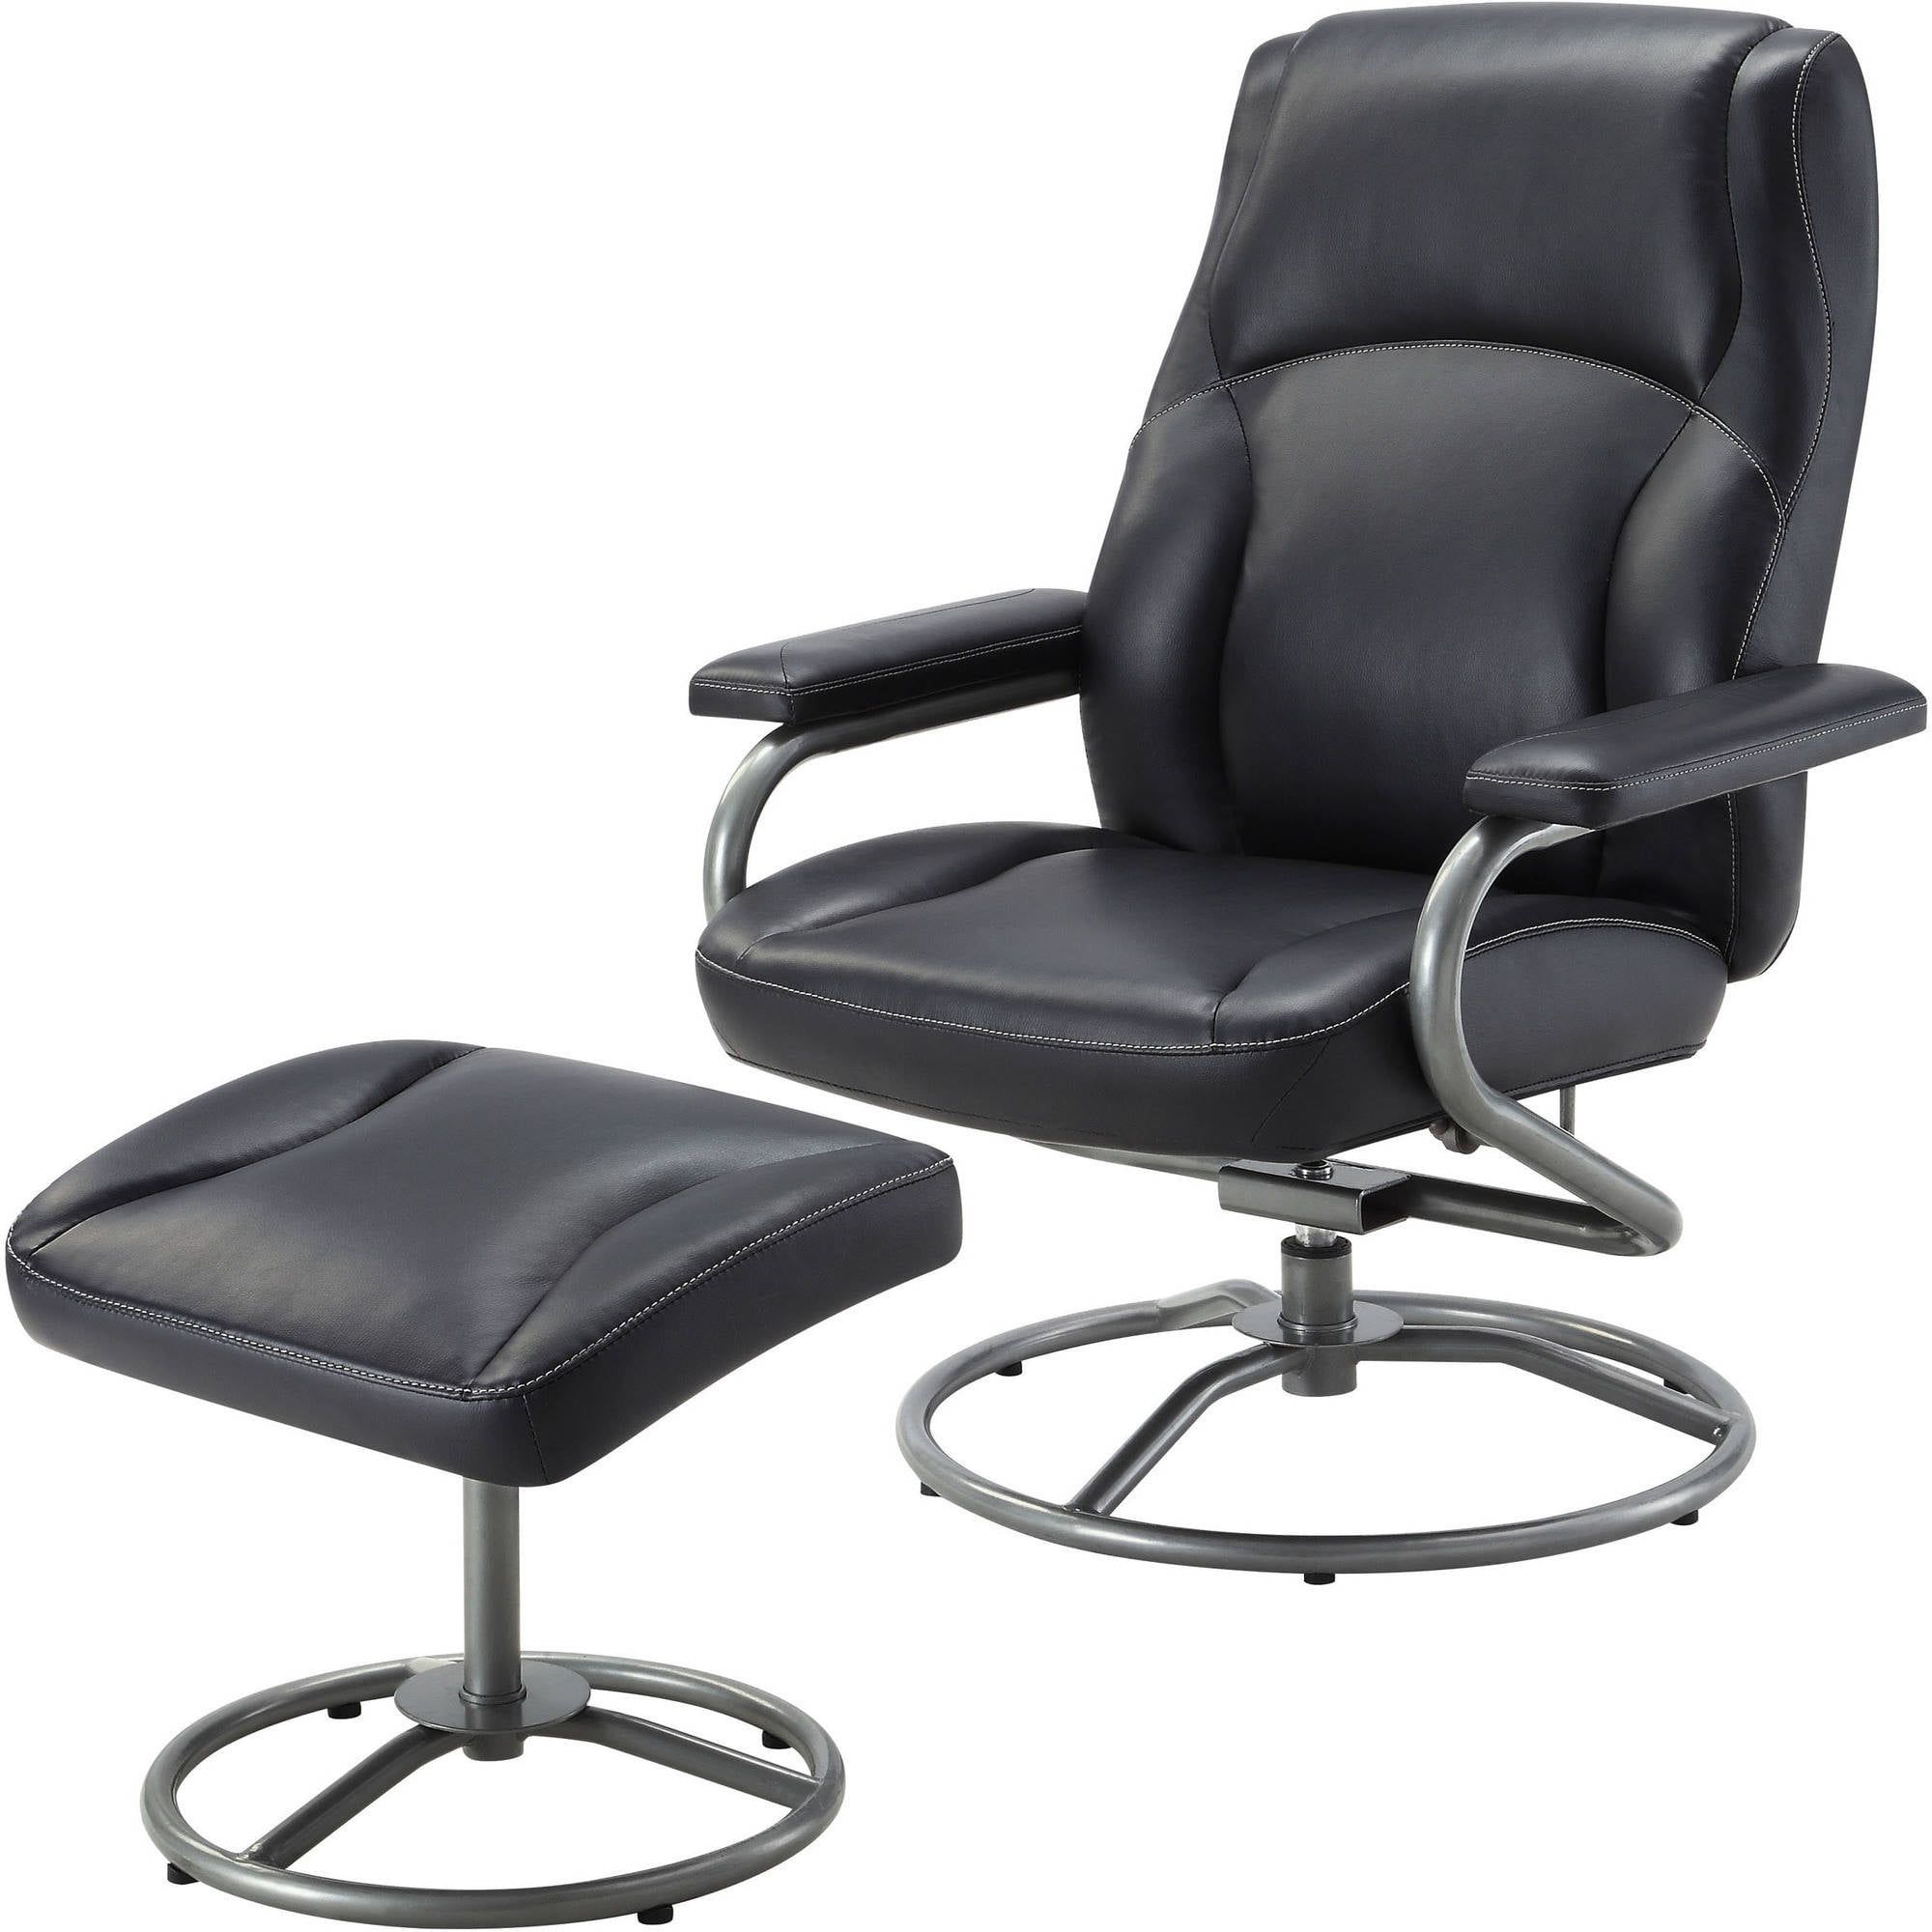 office recliners. Office Recliner Chair. Chair W Recliners E